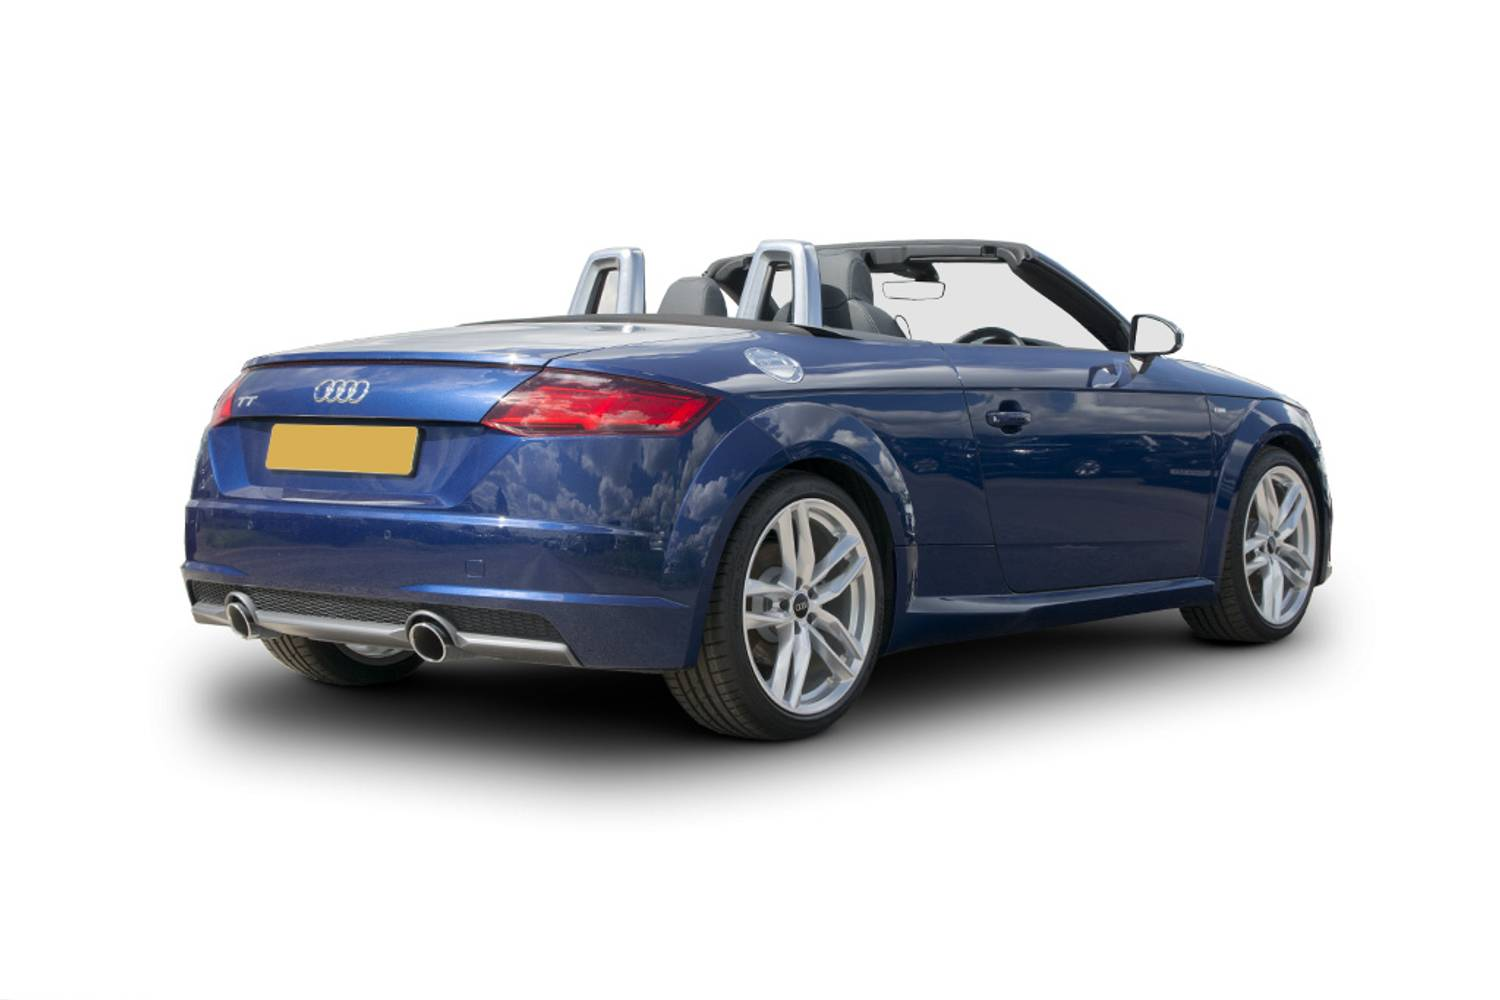 new audi tt roadster 2 0t fsi sport 2 door 2015 for sale. Black Bedroom Furniture Sets. Home Design Ideas